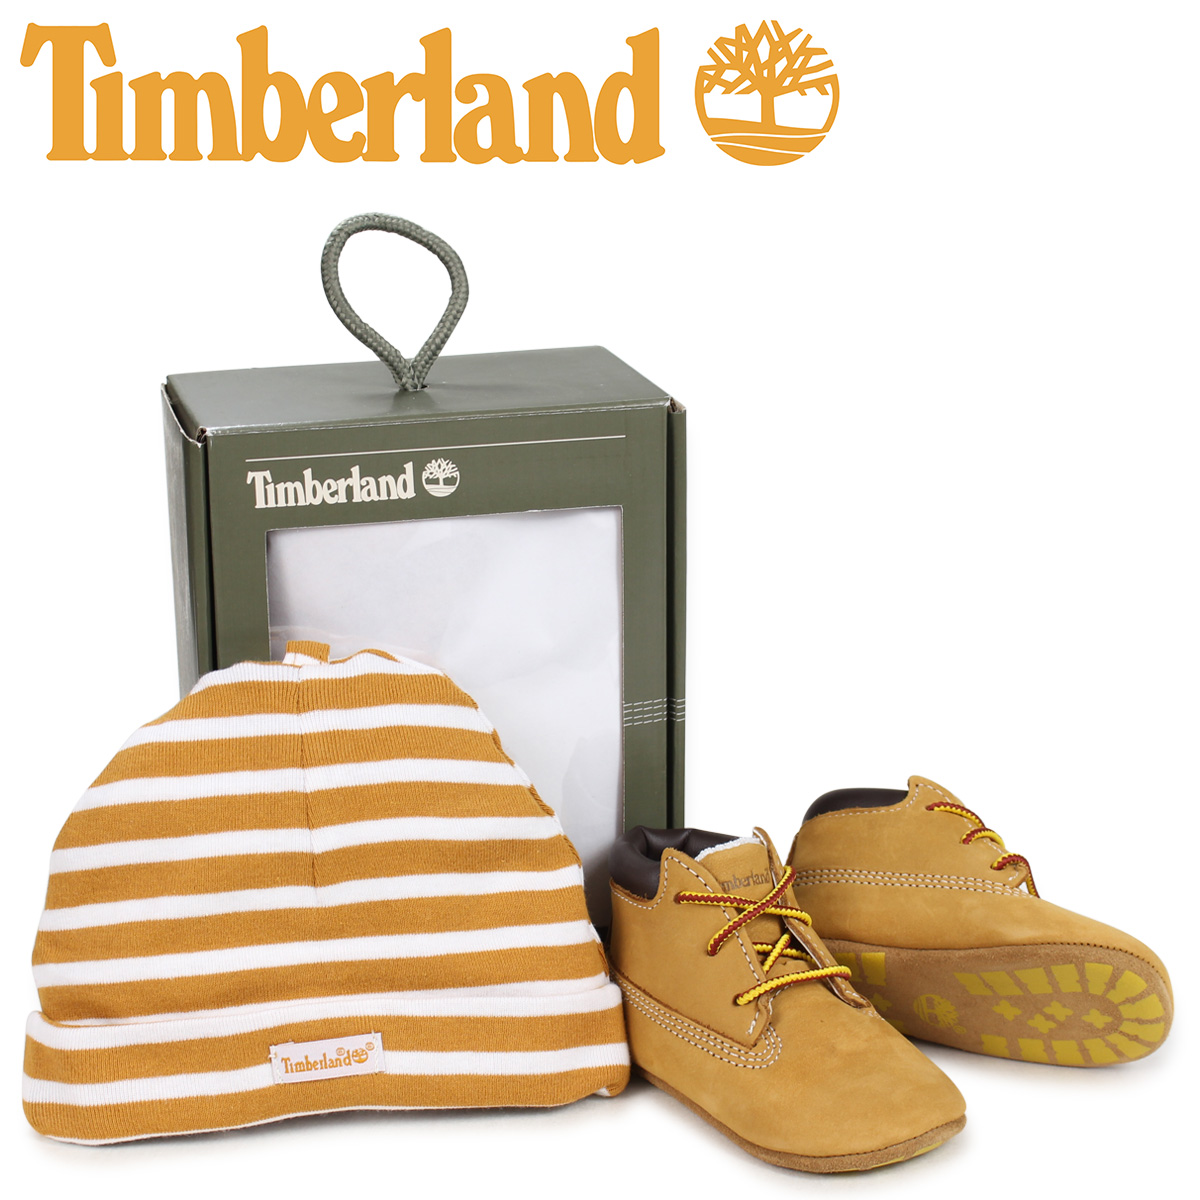 74428a34ae9 Timberland Timberland boots shoes cap hat knit hat set kids baby INFANT  CRIB BOOTIES CAP SET ギフトウィートベージュ 9589R